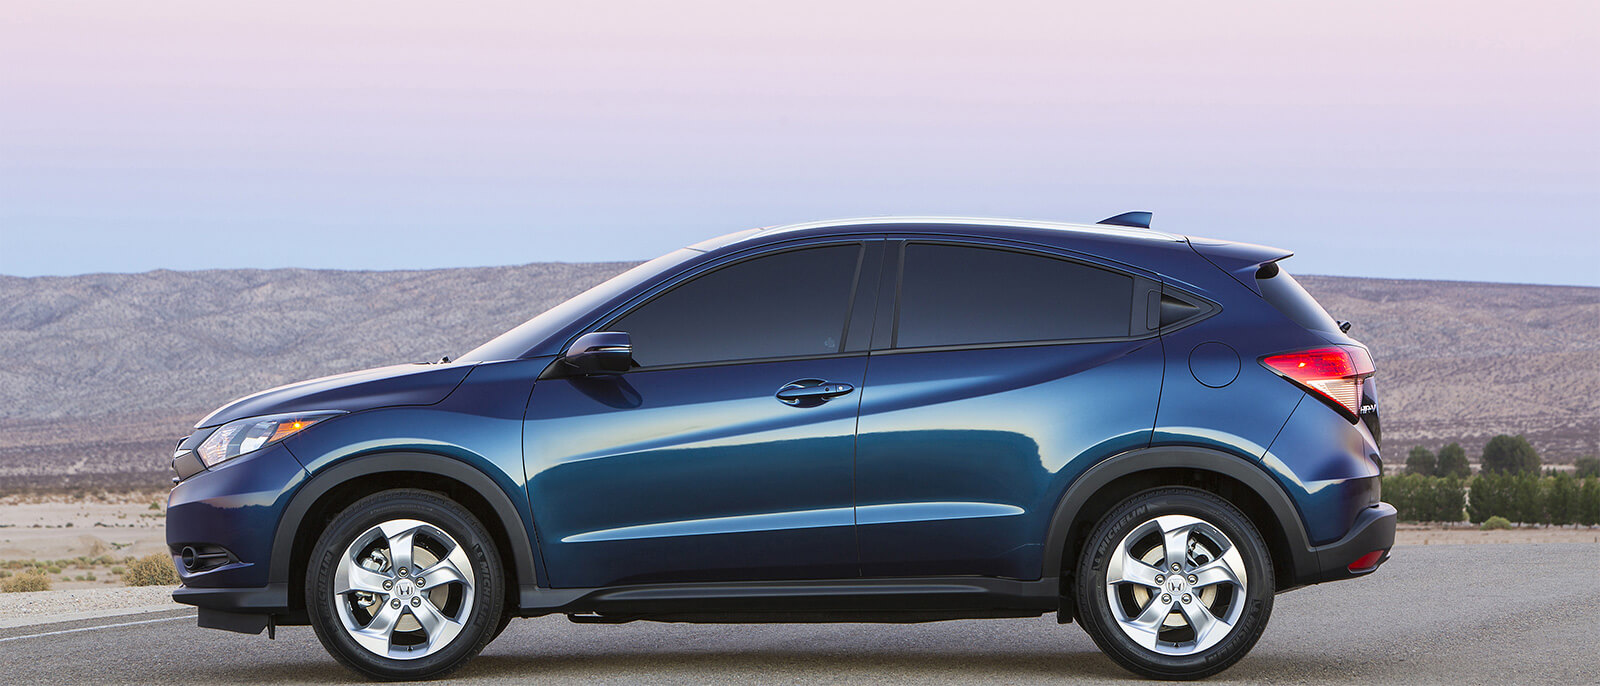 Honda Lease Deals And Specials Taunton